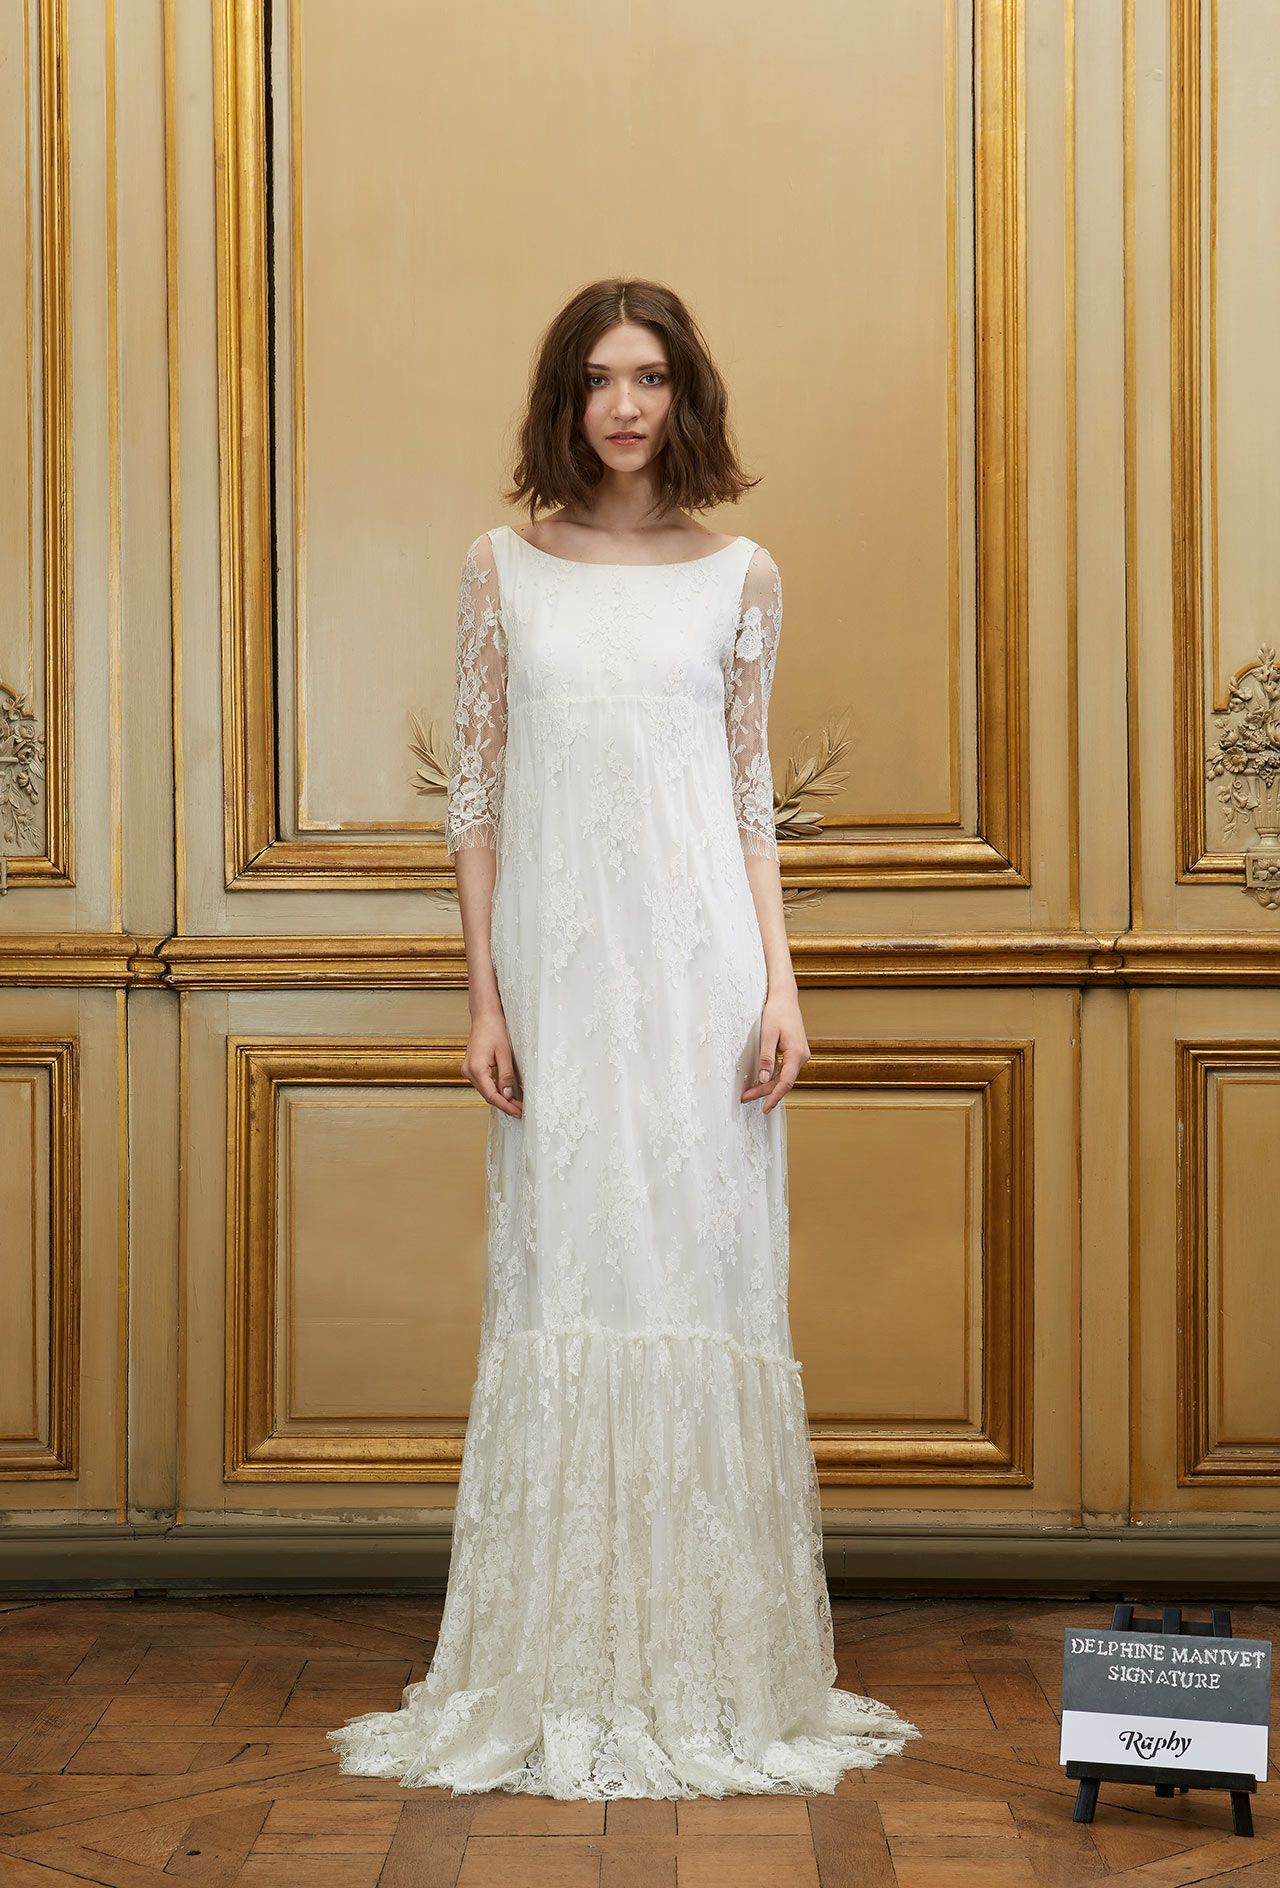 In Love With Beauty And Traditions Delphine Manivet Designs Modern Timeless Bridal Dresses